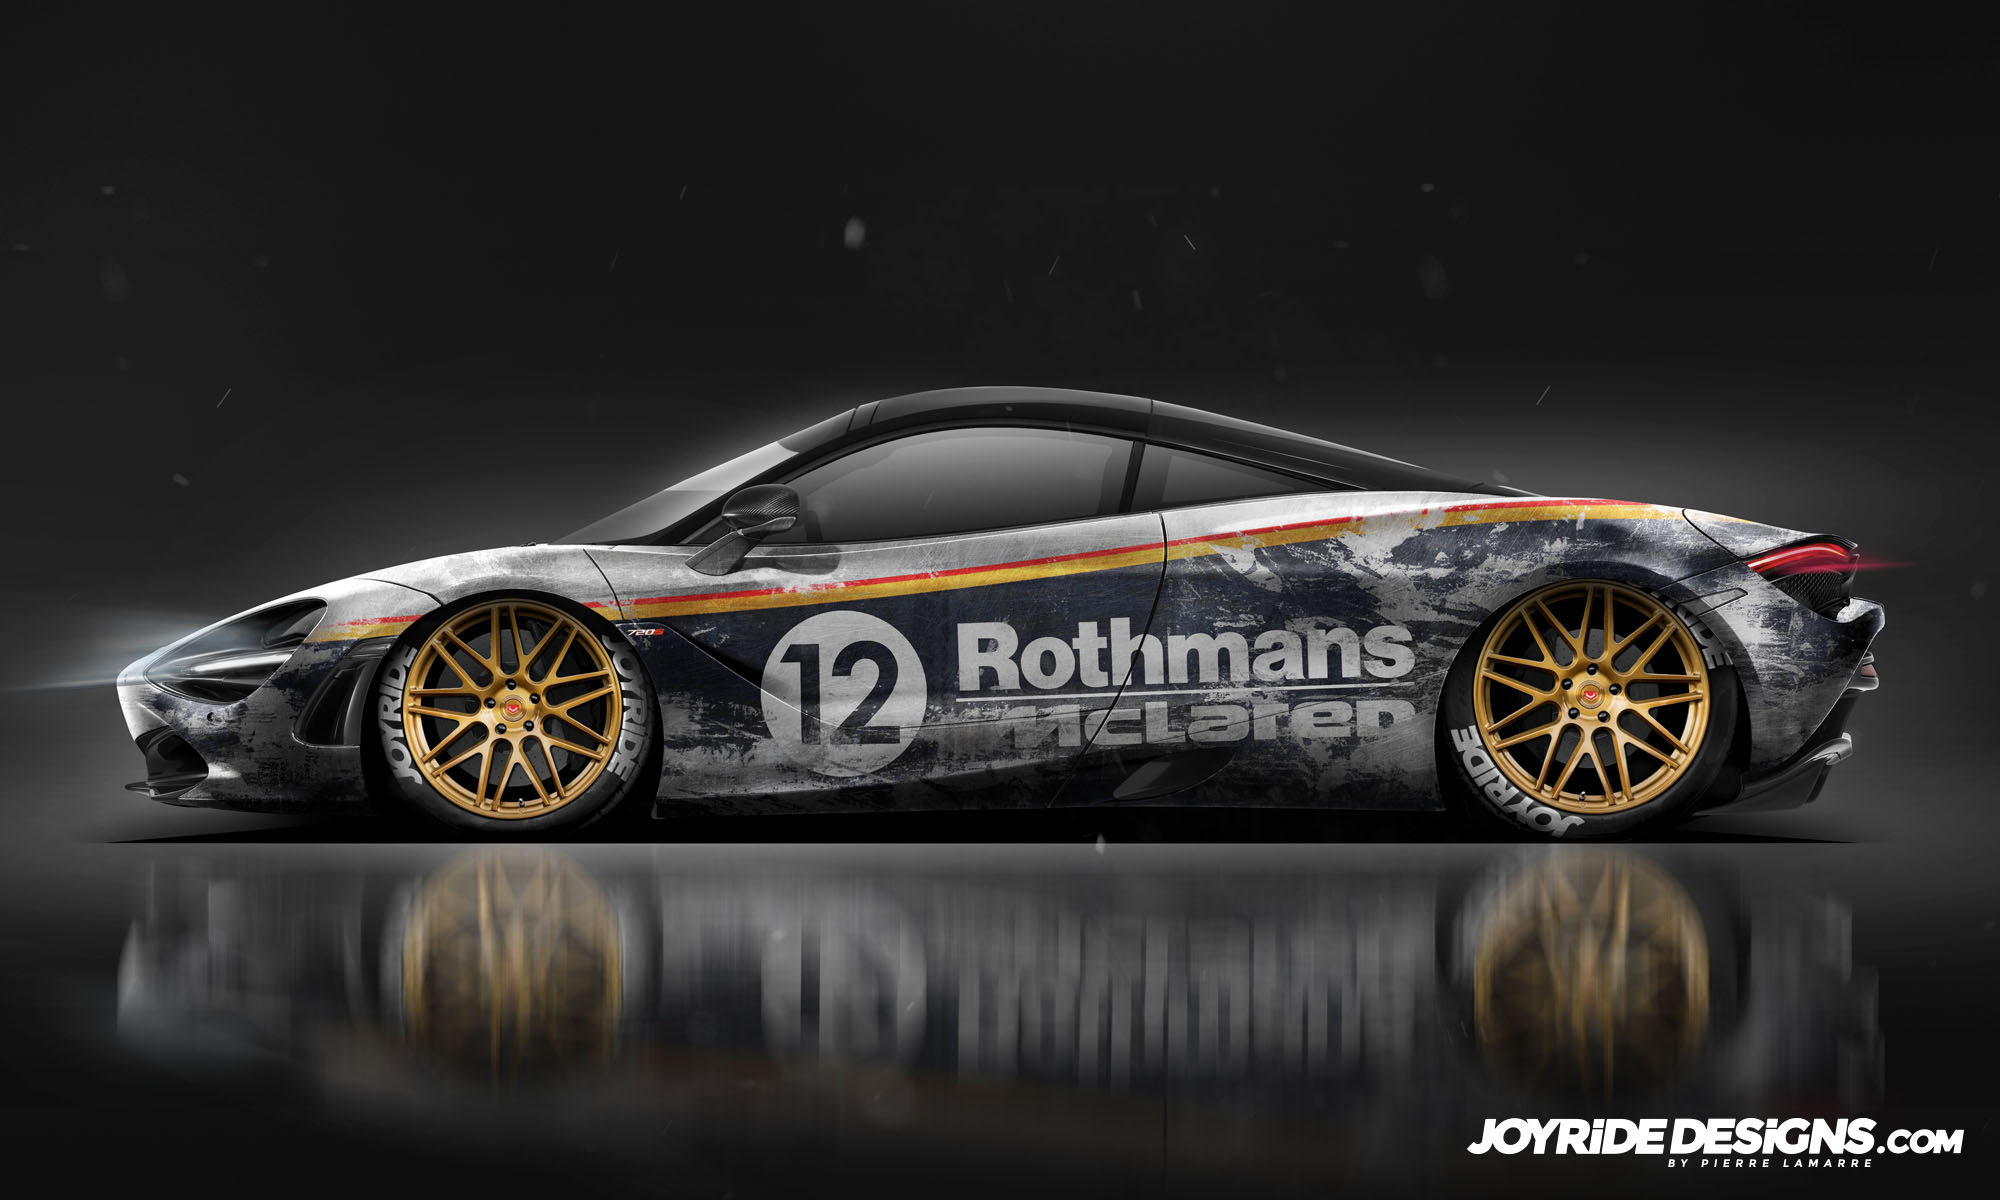 MCLAREN 720S ROTHMANS WEATHERED JOYRIDE WRAP DESIGN